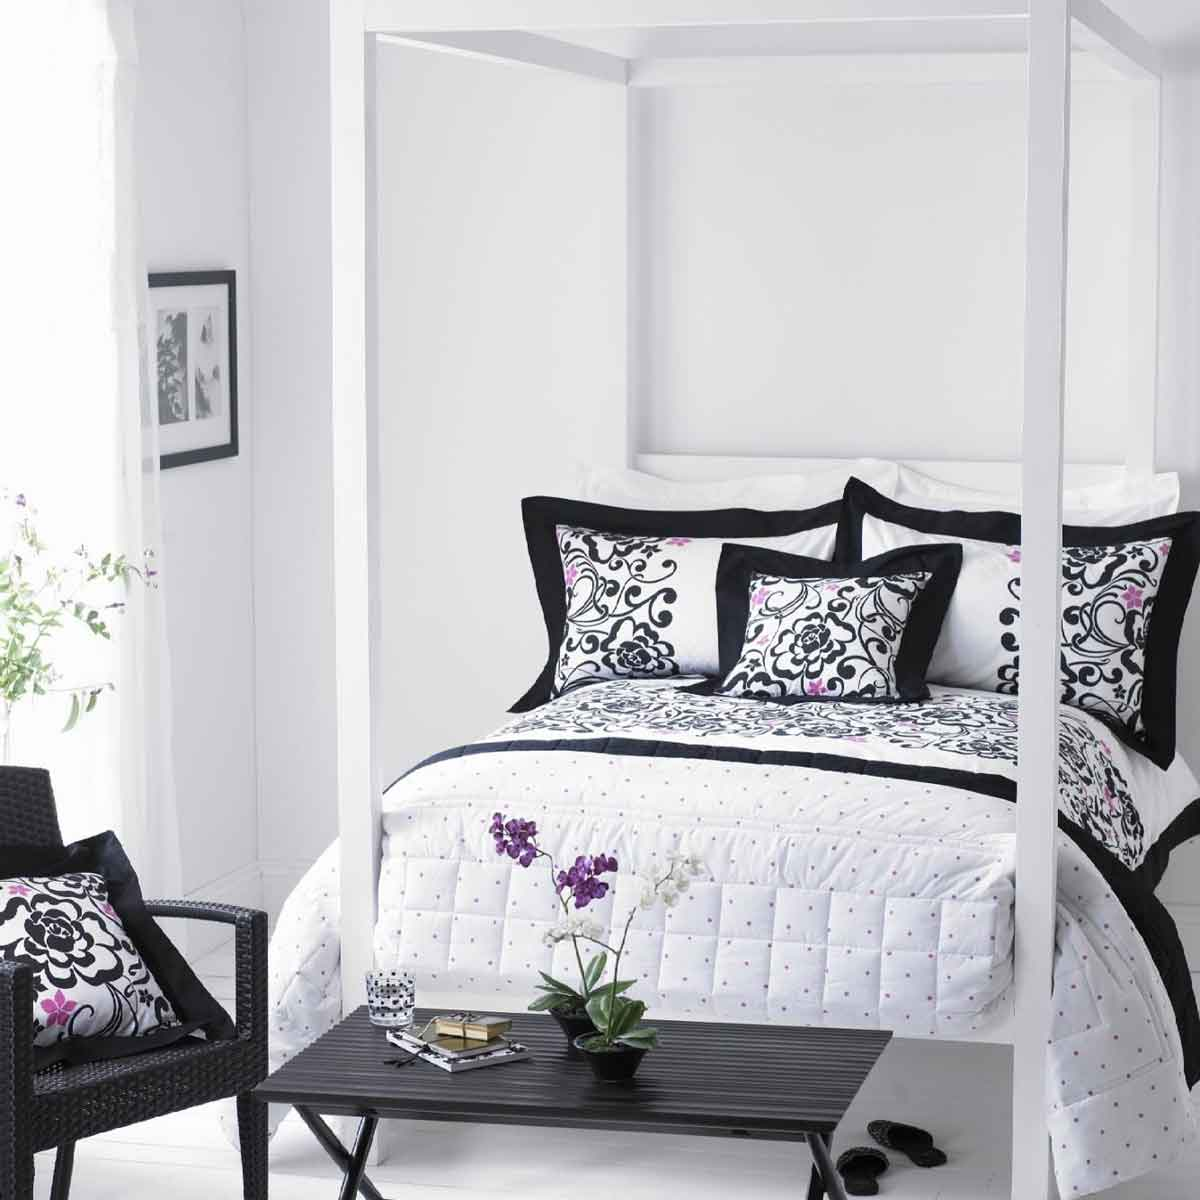 Modern black and white bedroom ideas for Bedroom furnishing ideas